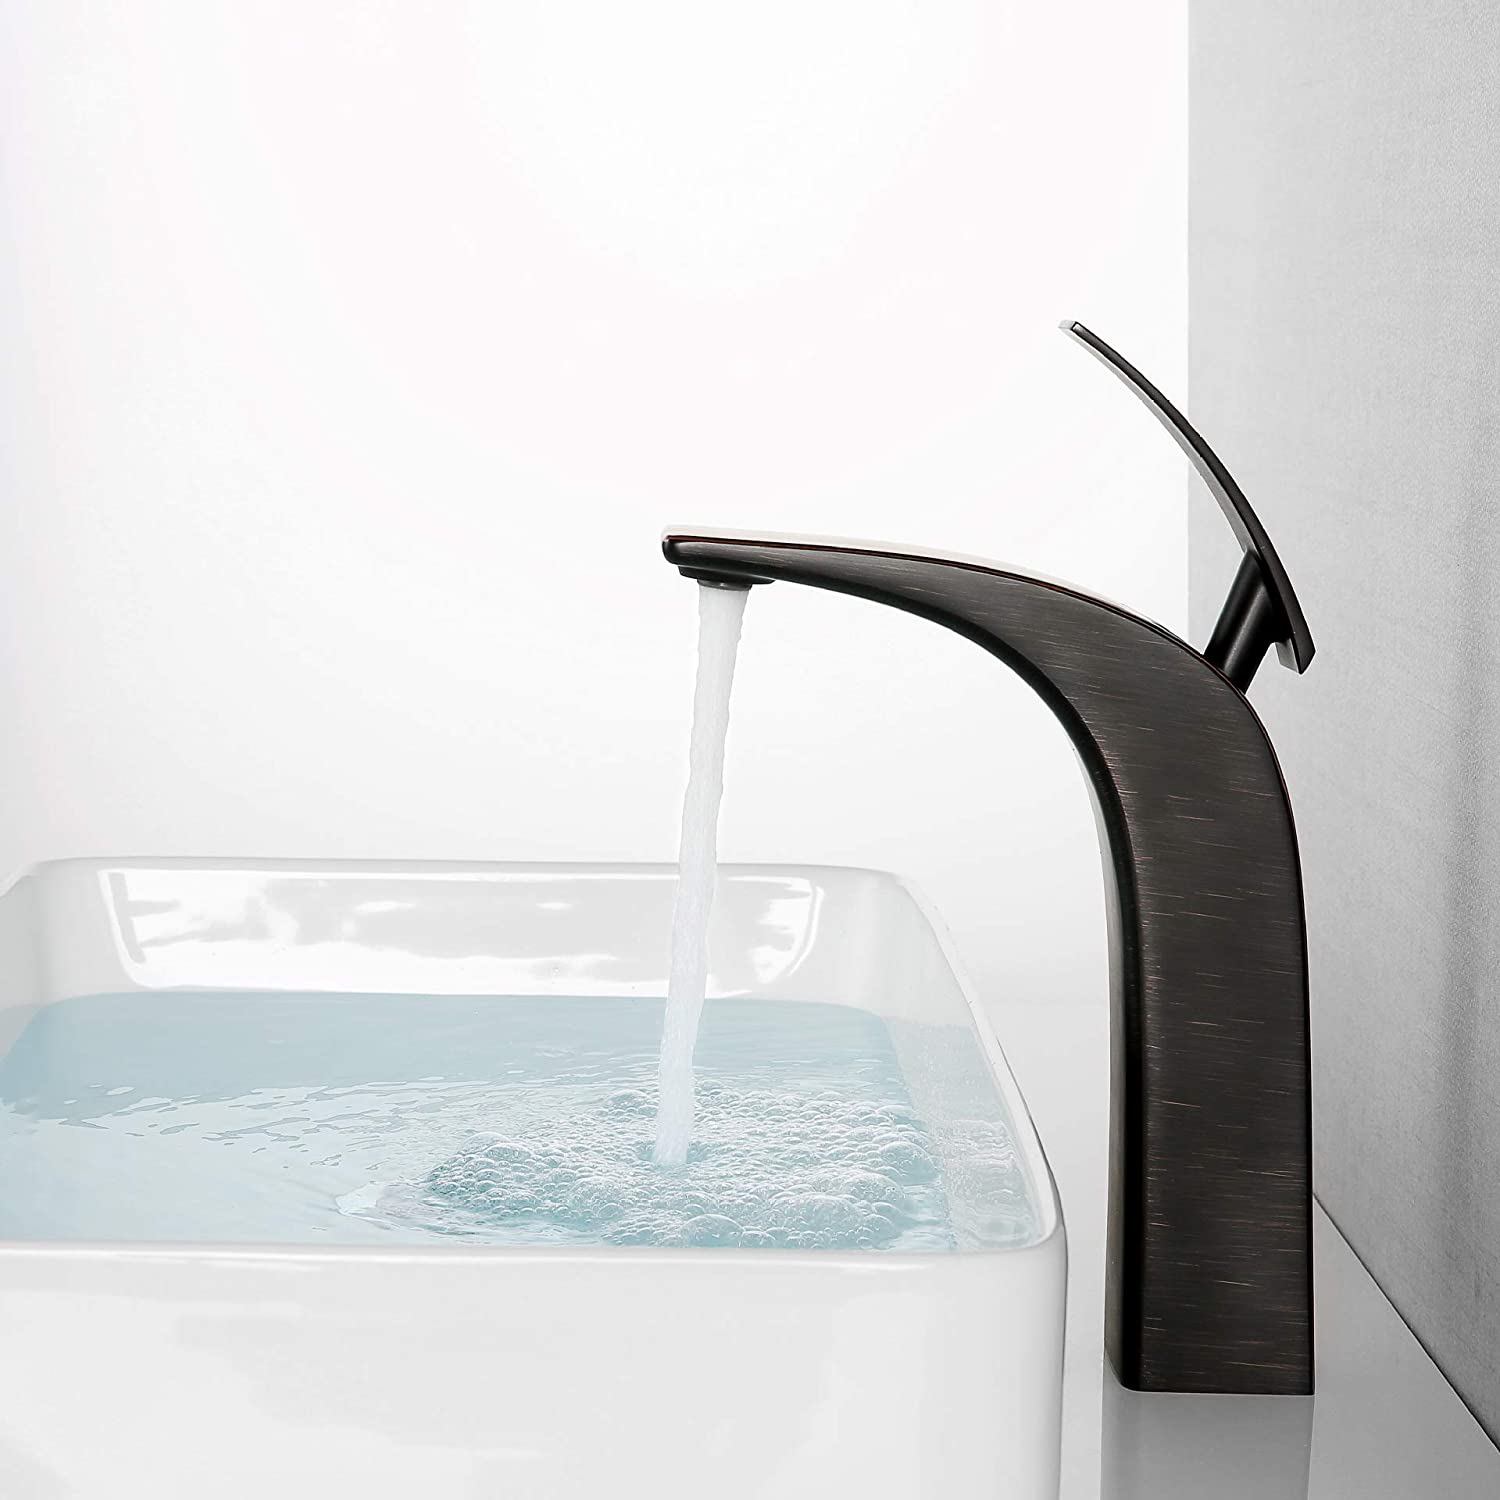 Single Hole Copper hot and Cold Water Mixing Valve Hoteltechnik Bathroom Cabinet Faucet Copper Basin Faucet ORB